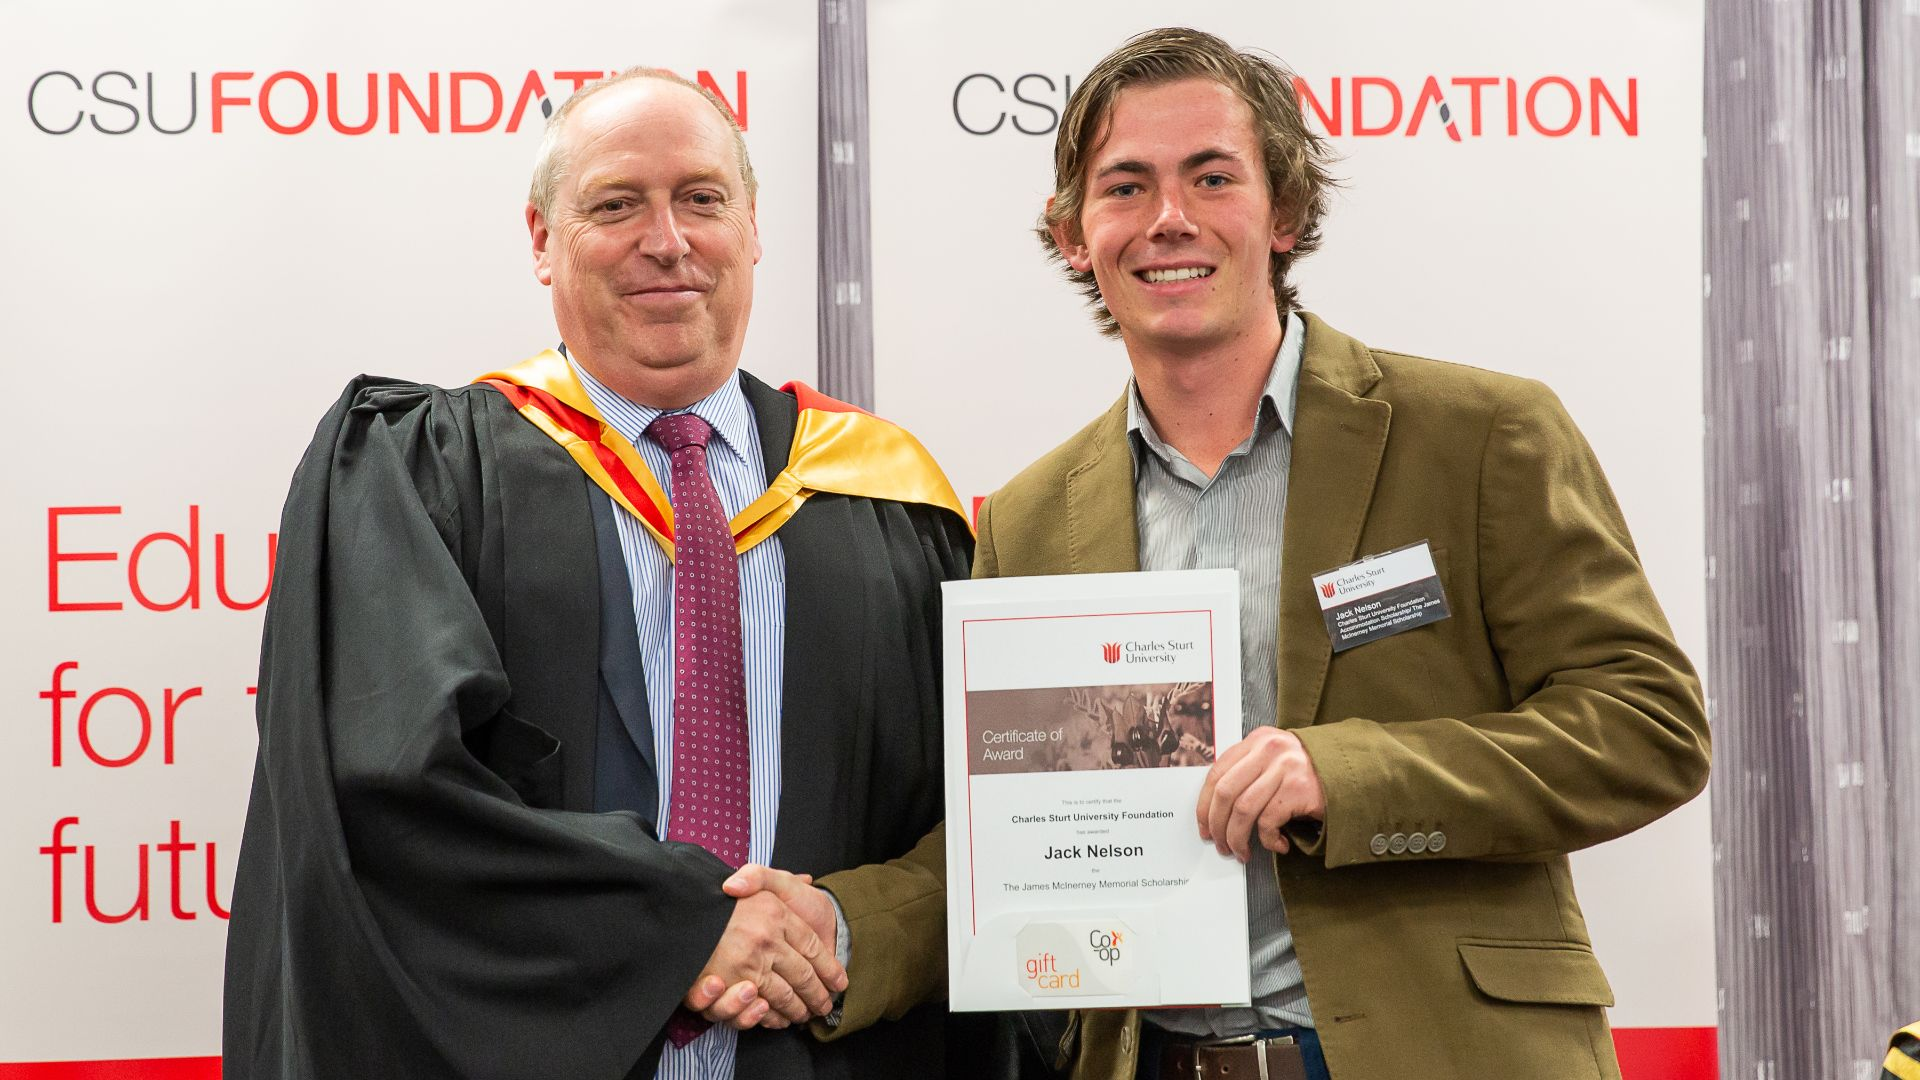 Charles Sturt students encourage others to apply for scholarships before deadline